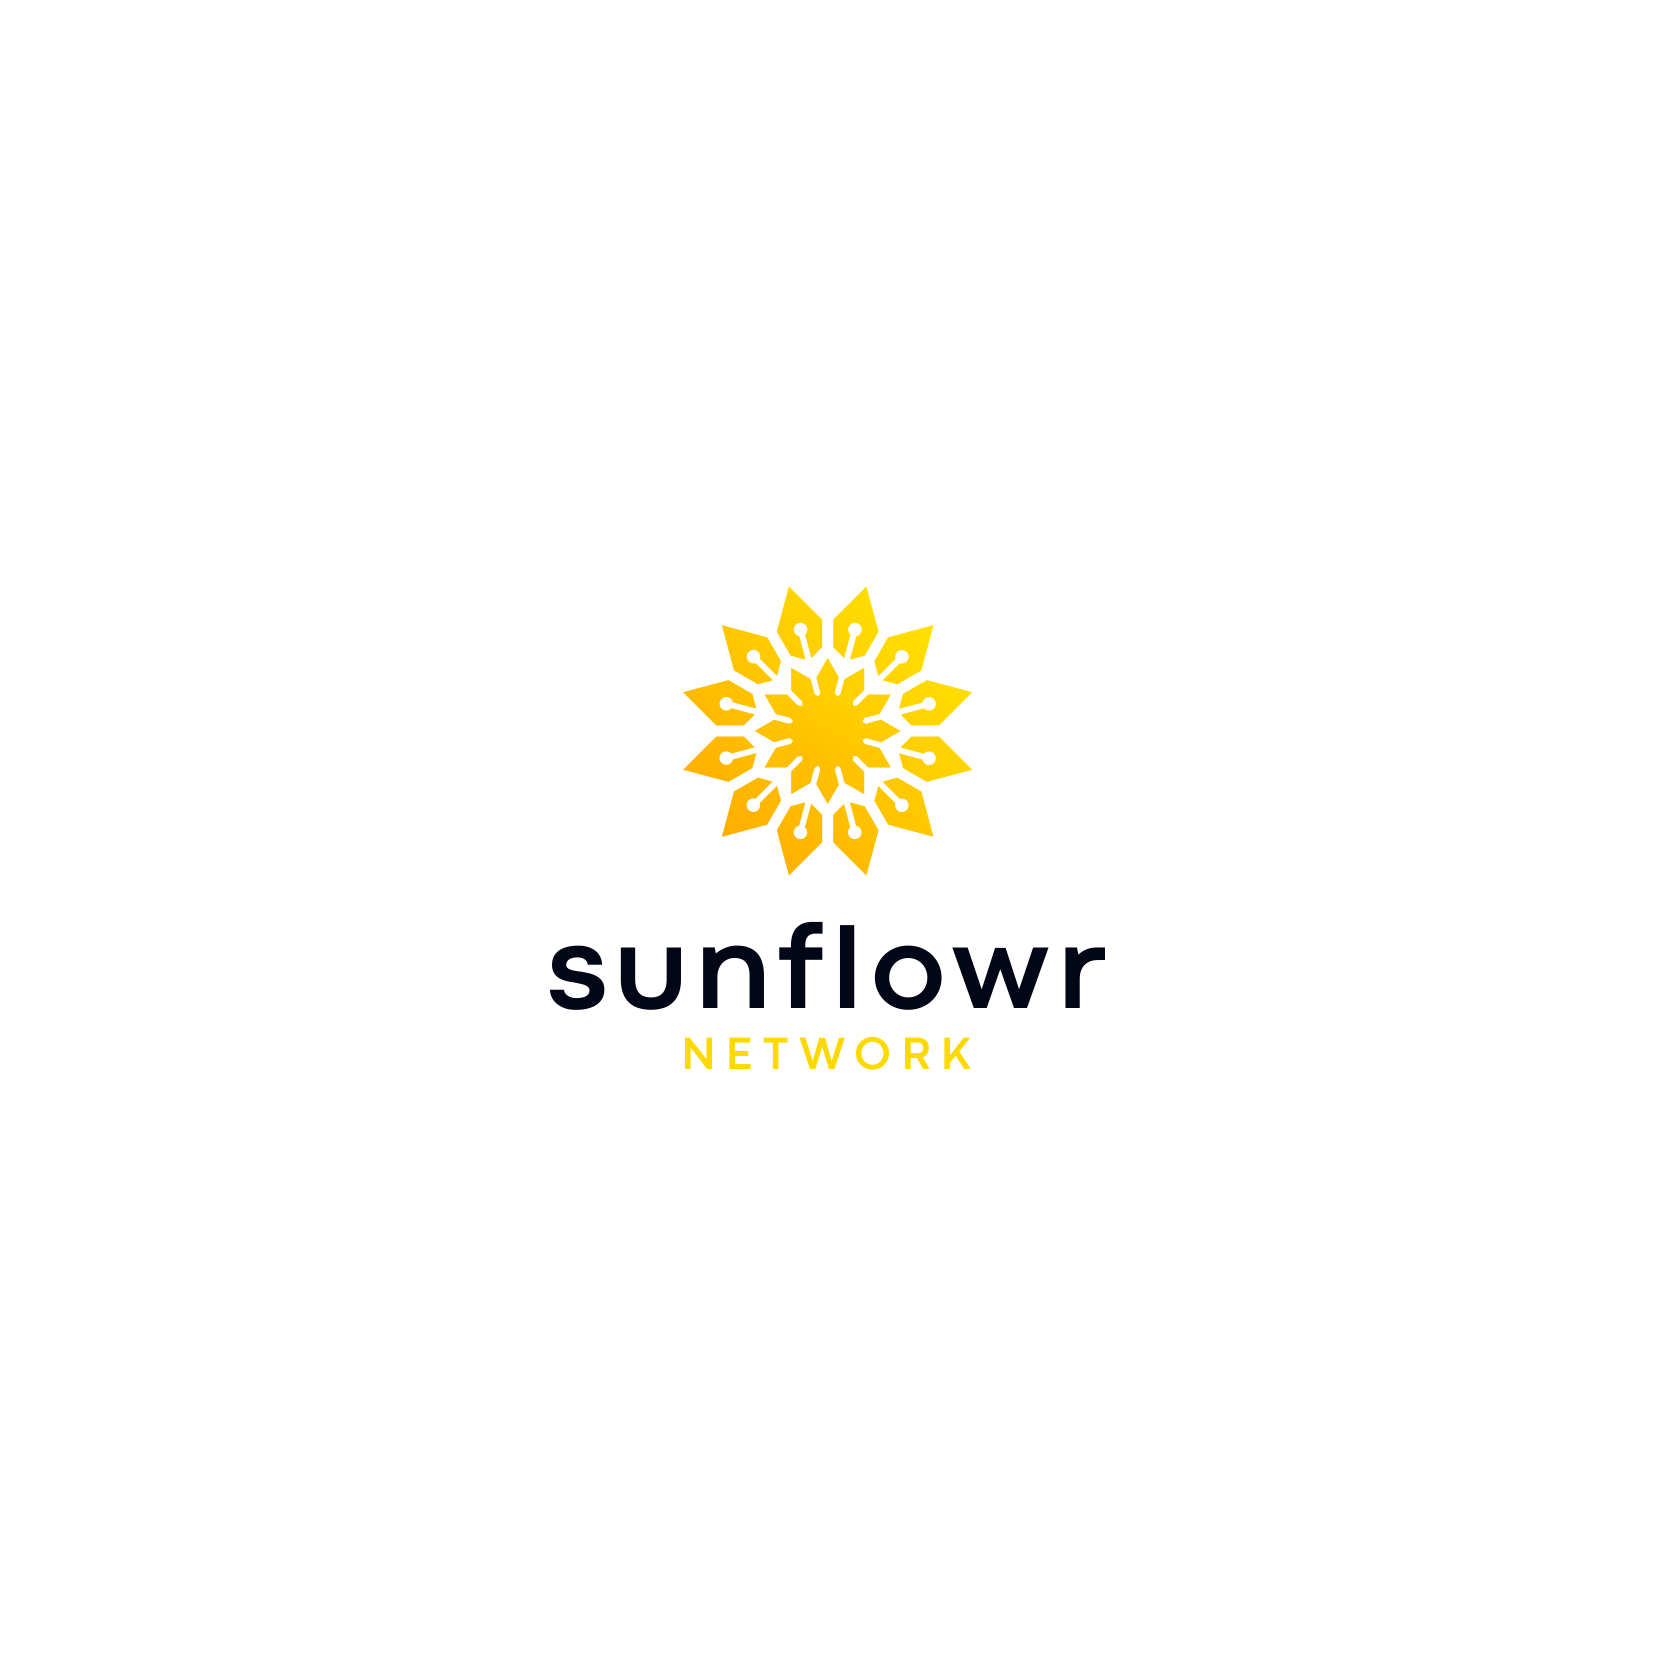 Design a modern/professional logo for a massive clean energy network